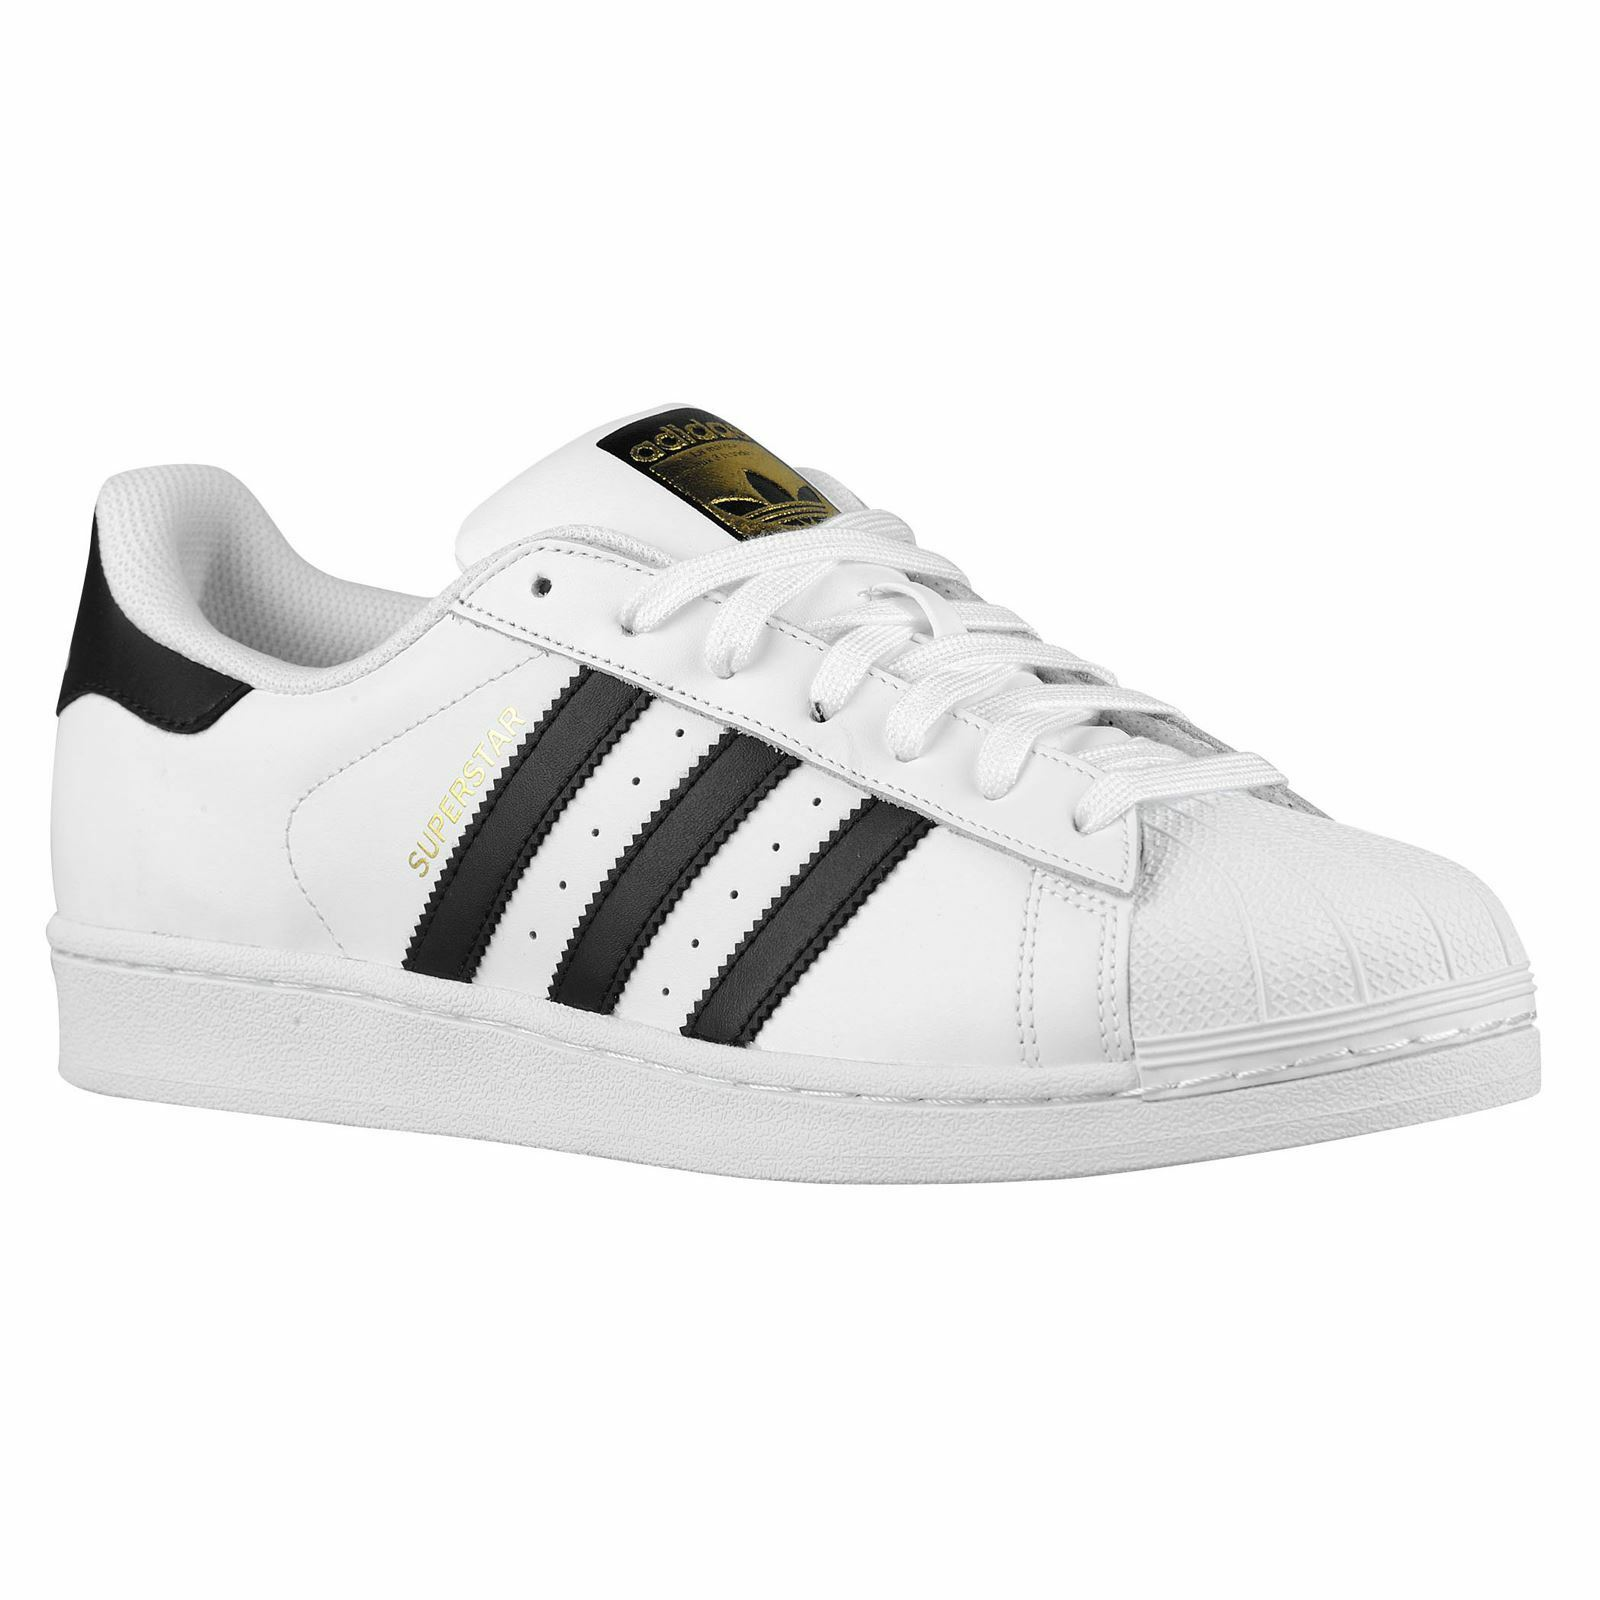 Adidas Superstar White Black Mens Trainers Sneakers Sneakers Sneakers 996d86